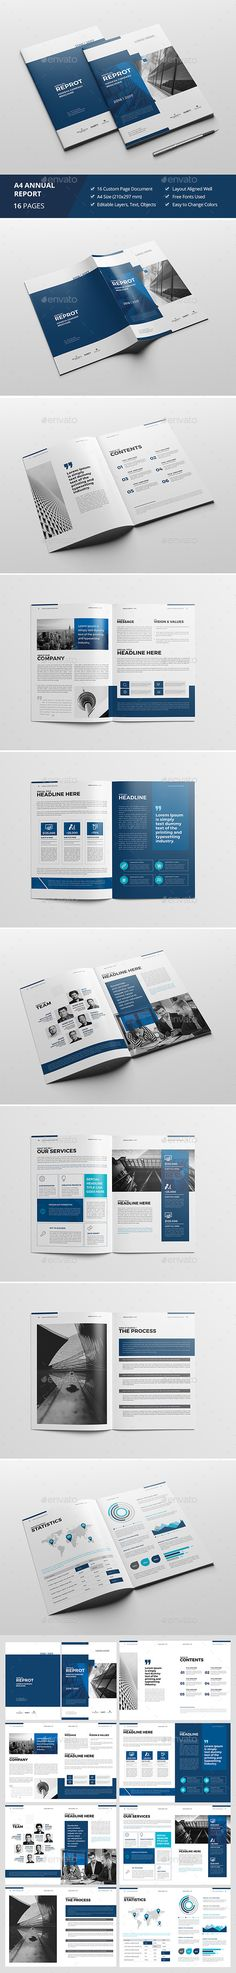 Haweya Annual Report 06  — InDesign INDD #infographics #creative • Download ➝ https://graphicriver.net/item/haweya-annual-report-06/18653250?ref=pxcr